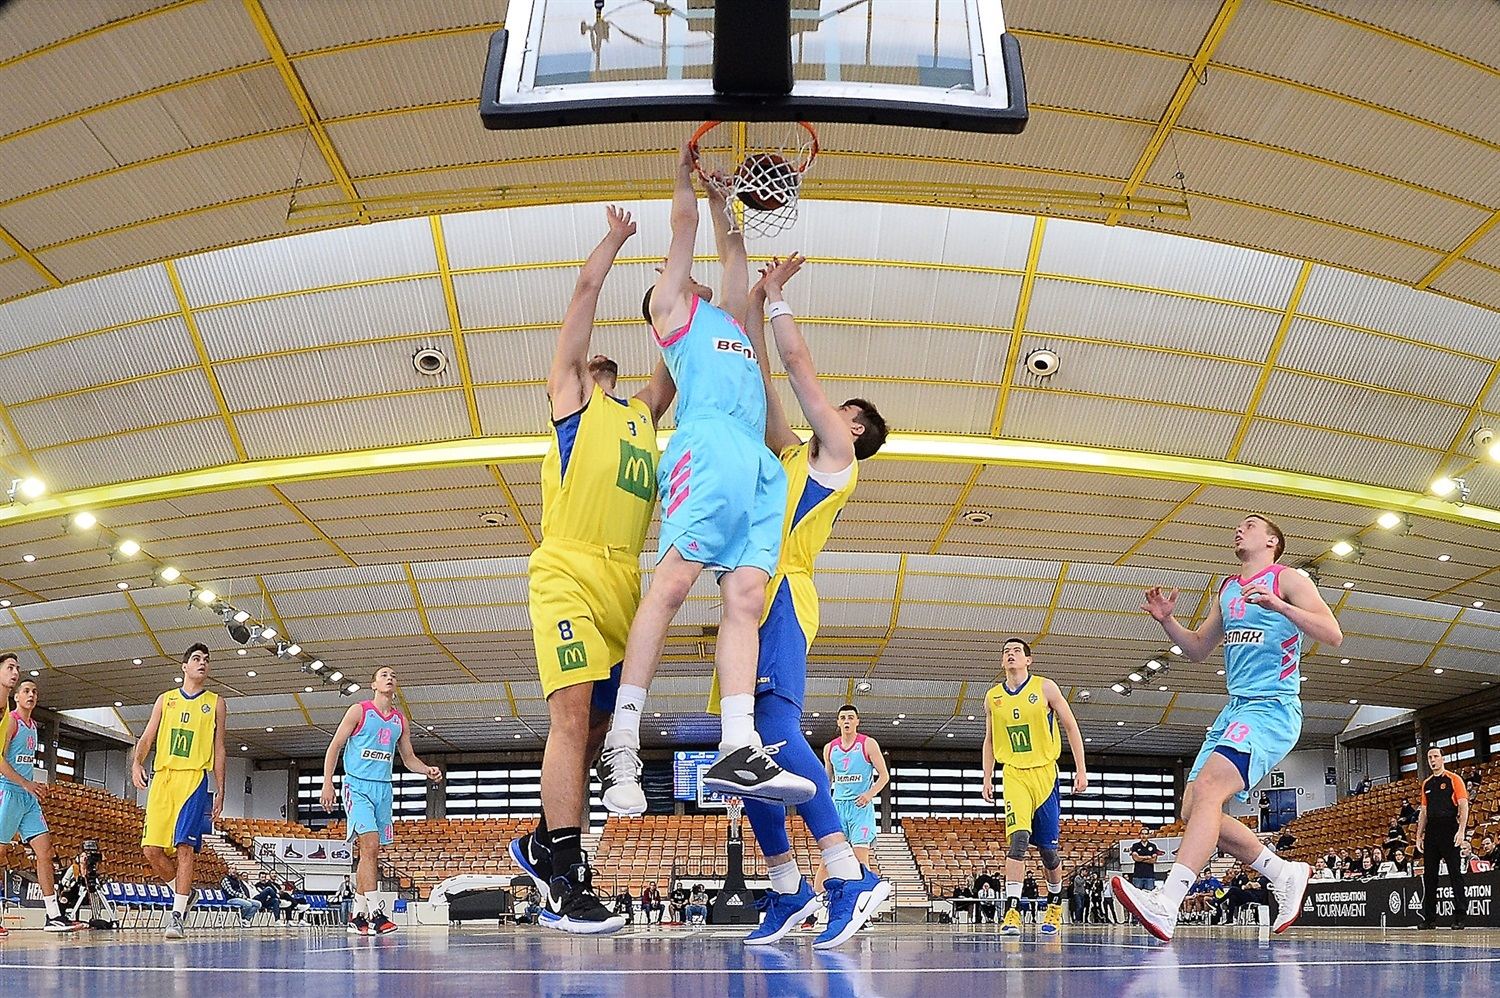 Player U18 Mega Bemax Belgrade - ANGT Final Four Vitoria-Gasteiz 2019 - JT18